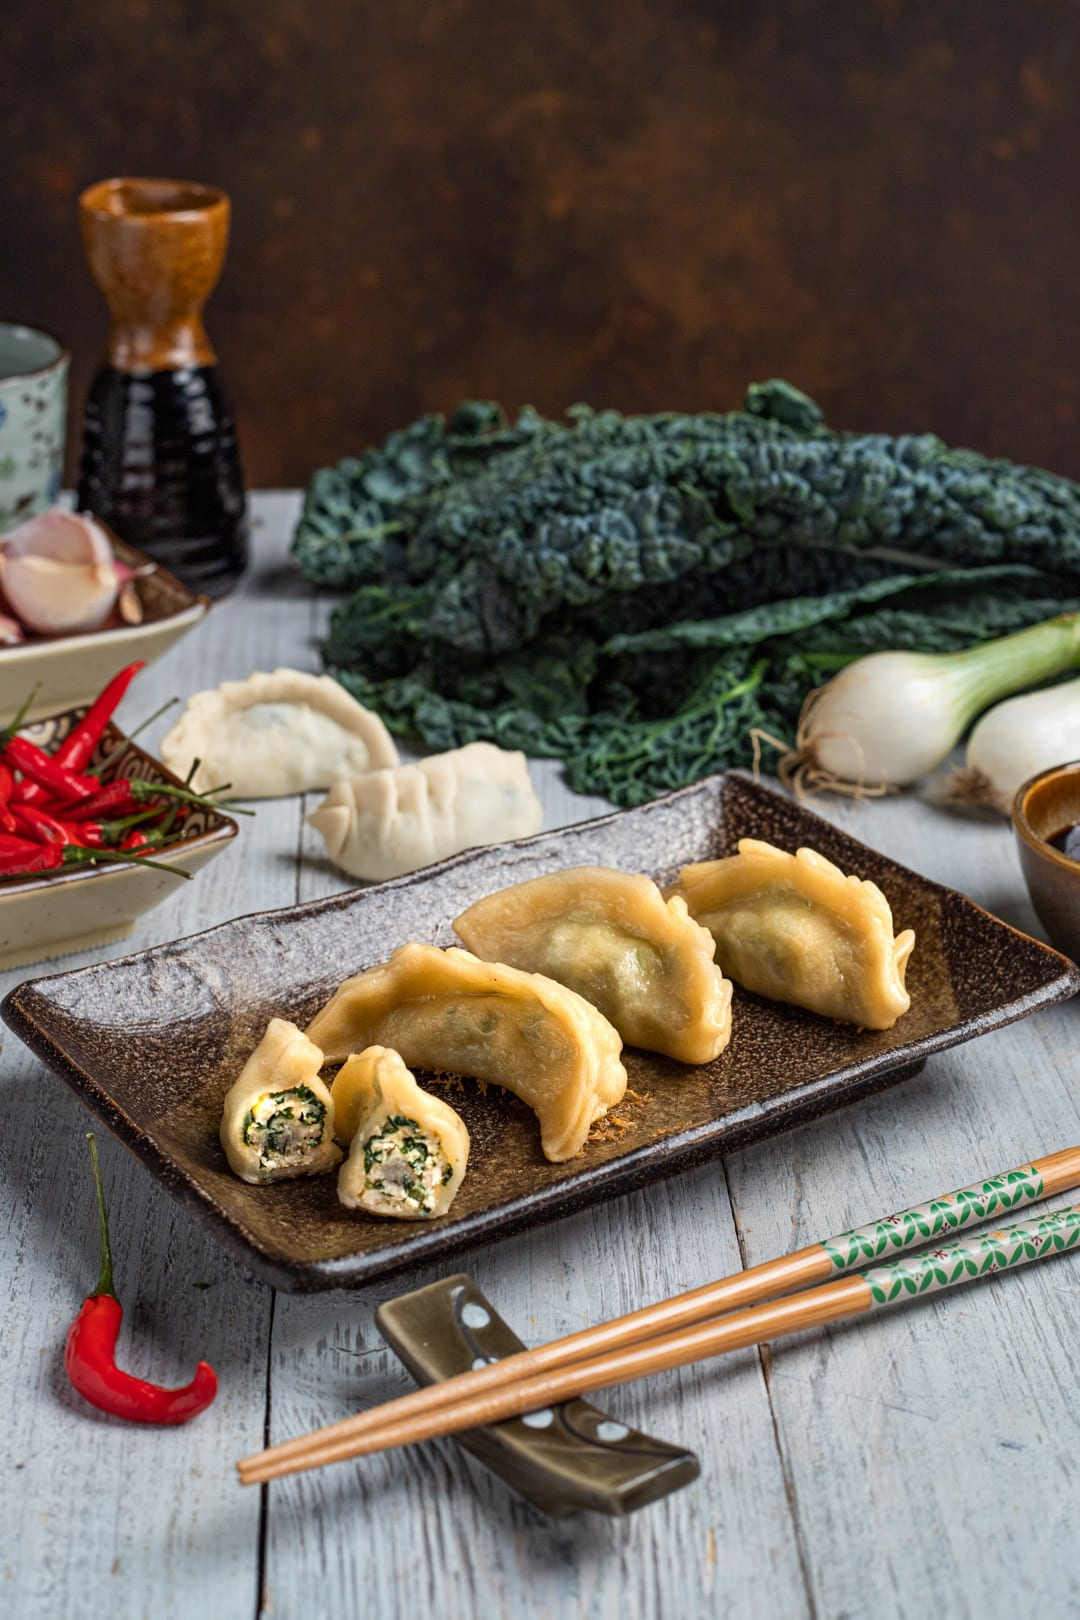 Gyoza di pollo, ravioli cinesi pronti all'assaggio